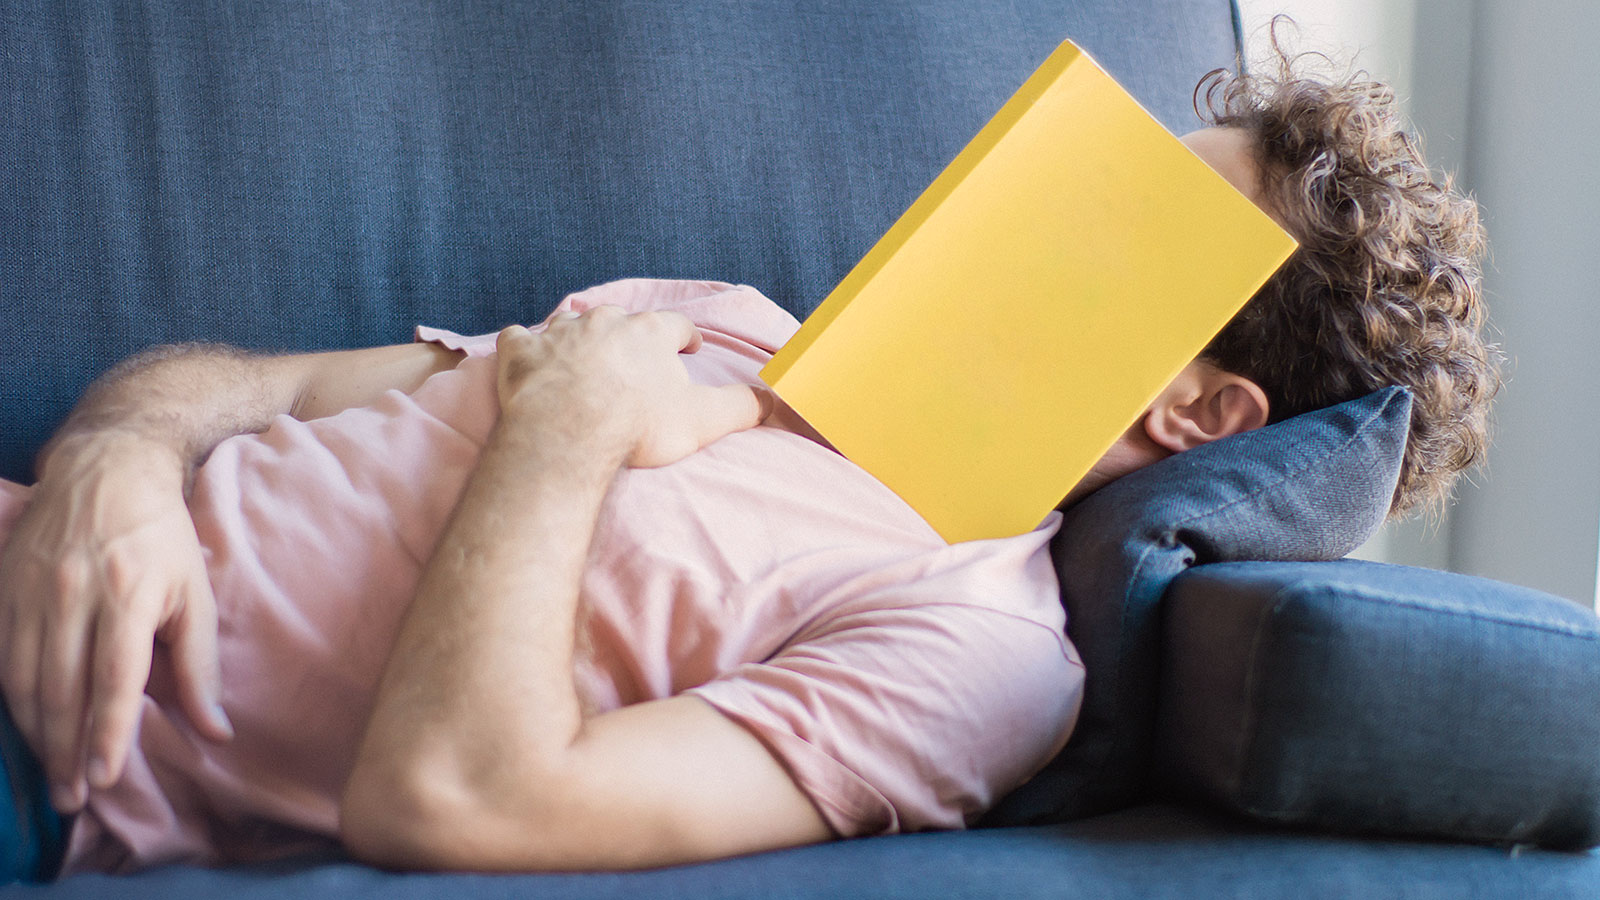 4 signs bad sleep is seriously impacting your career, according to Harvard